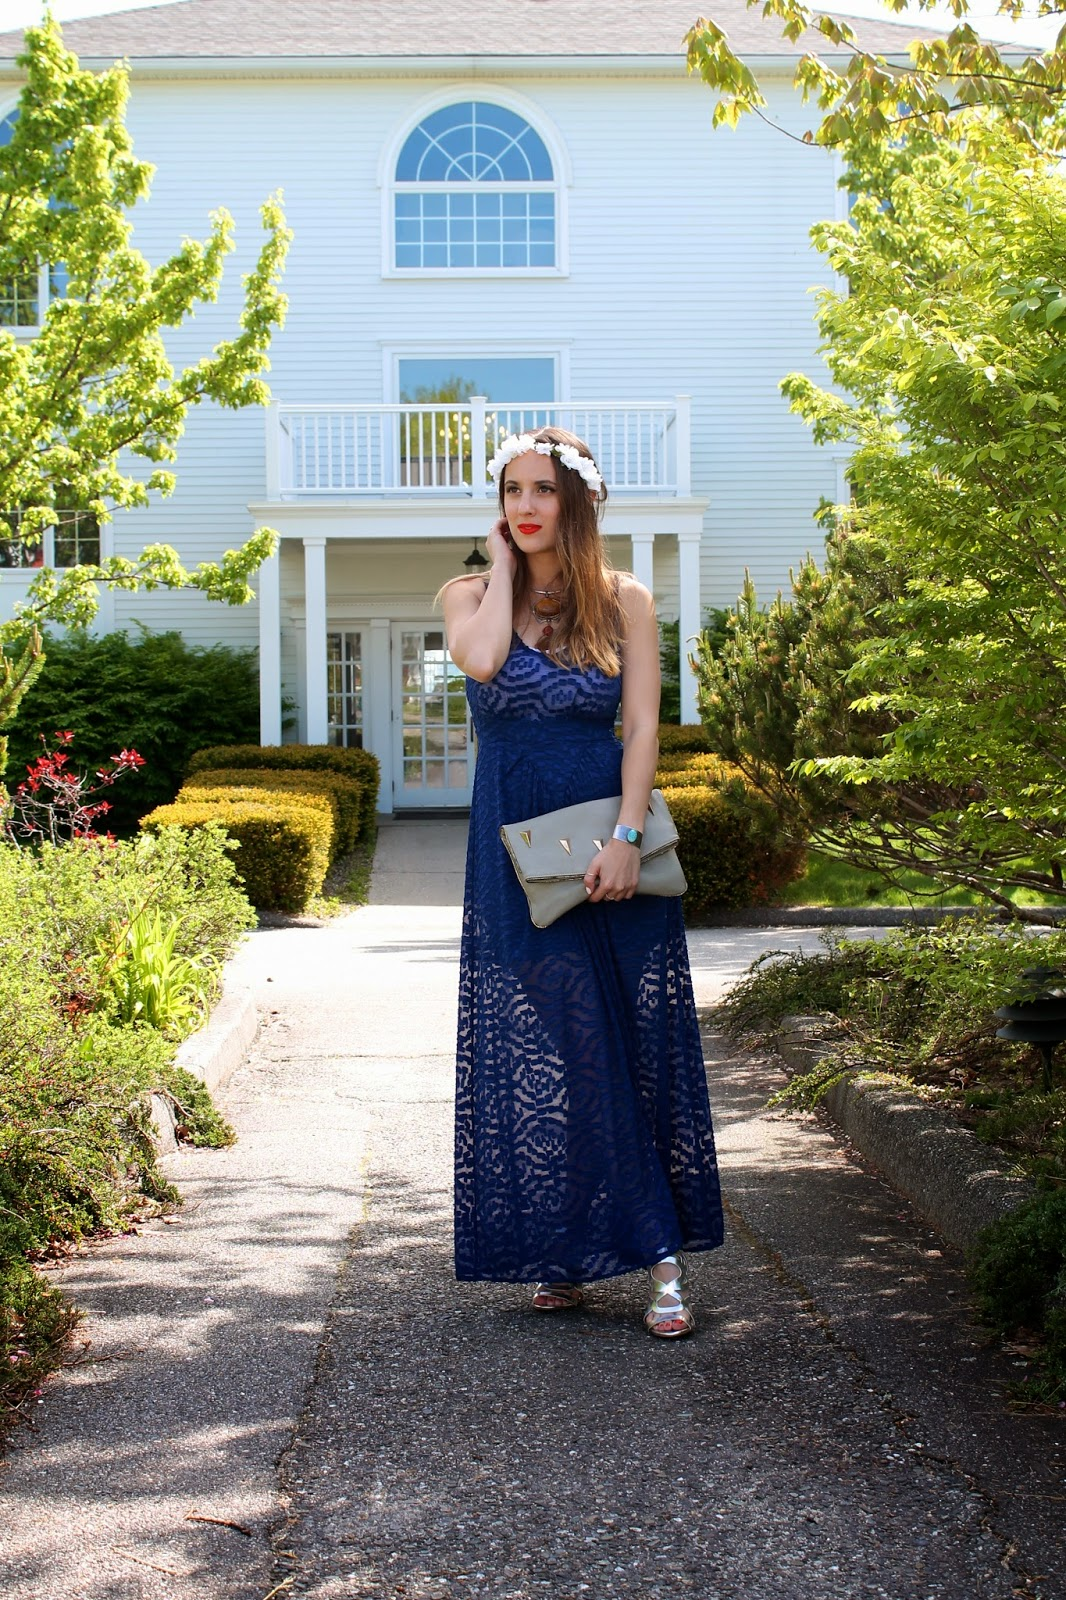 Renaissance, June & Hudson, vintage, LF Stores, Claire's, prep, bohemian, street style, wedding style, travel, outfit inspiration, outfit ideas, maxi dress, metallic, amber, flower crown